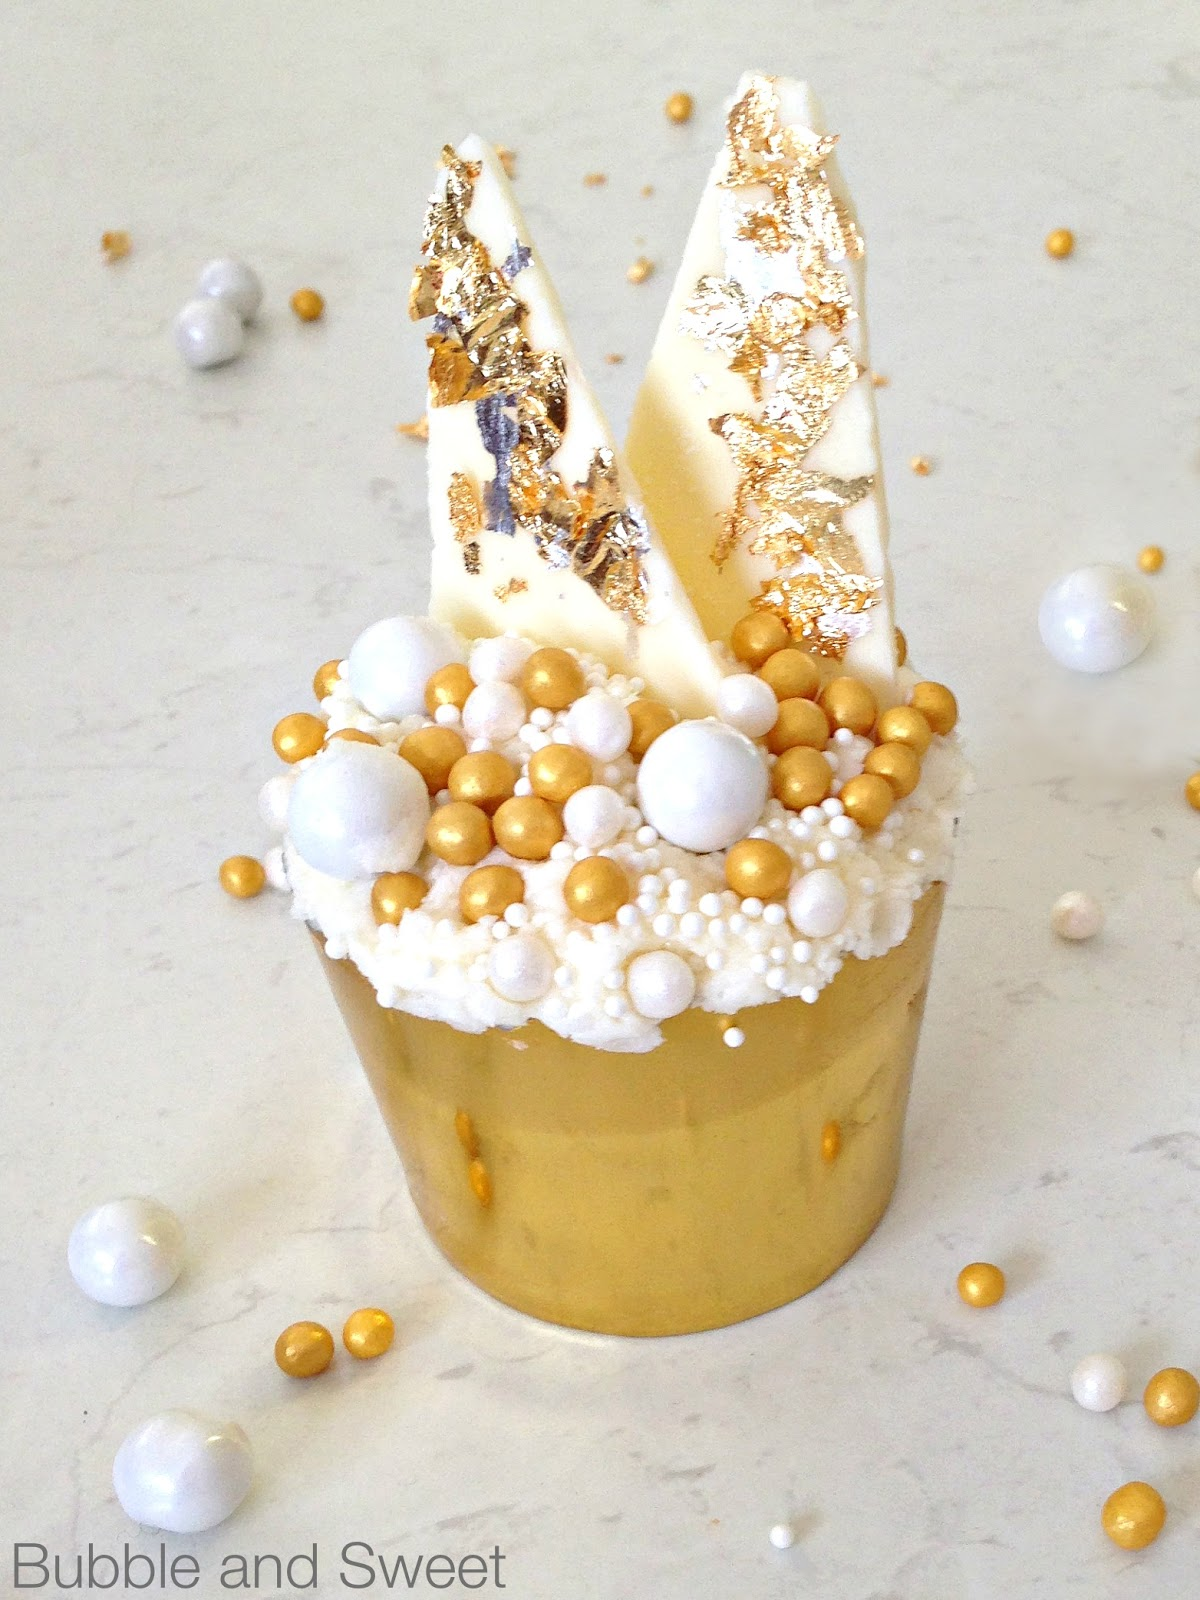 Cake Decorating Gold Pearls : Sugar Pearls Soft - Gold 5mm 1kg - All Things Baking